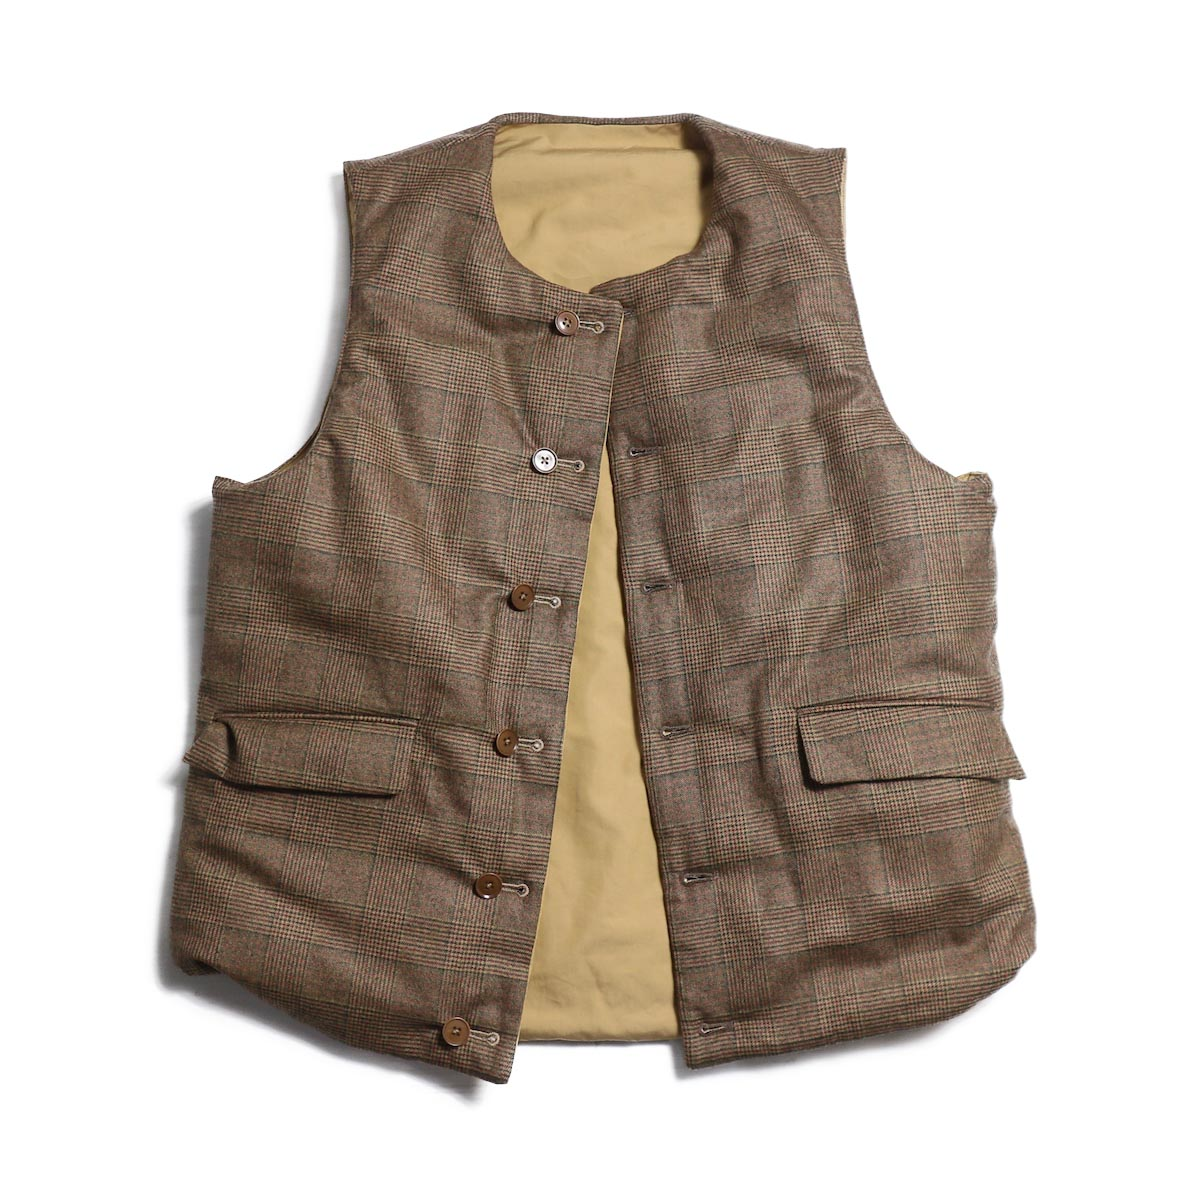 A VONTADE / Reversible Pack VestⅡ -TAN/BROWN GREN CHECK